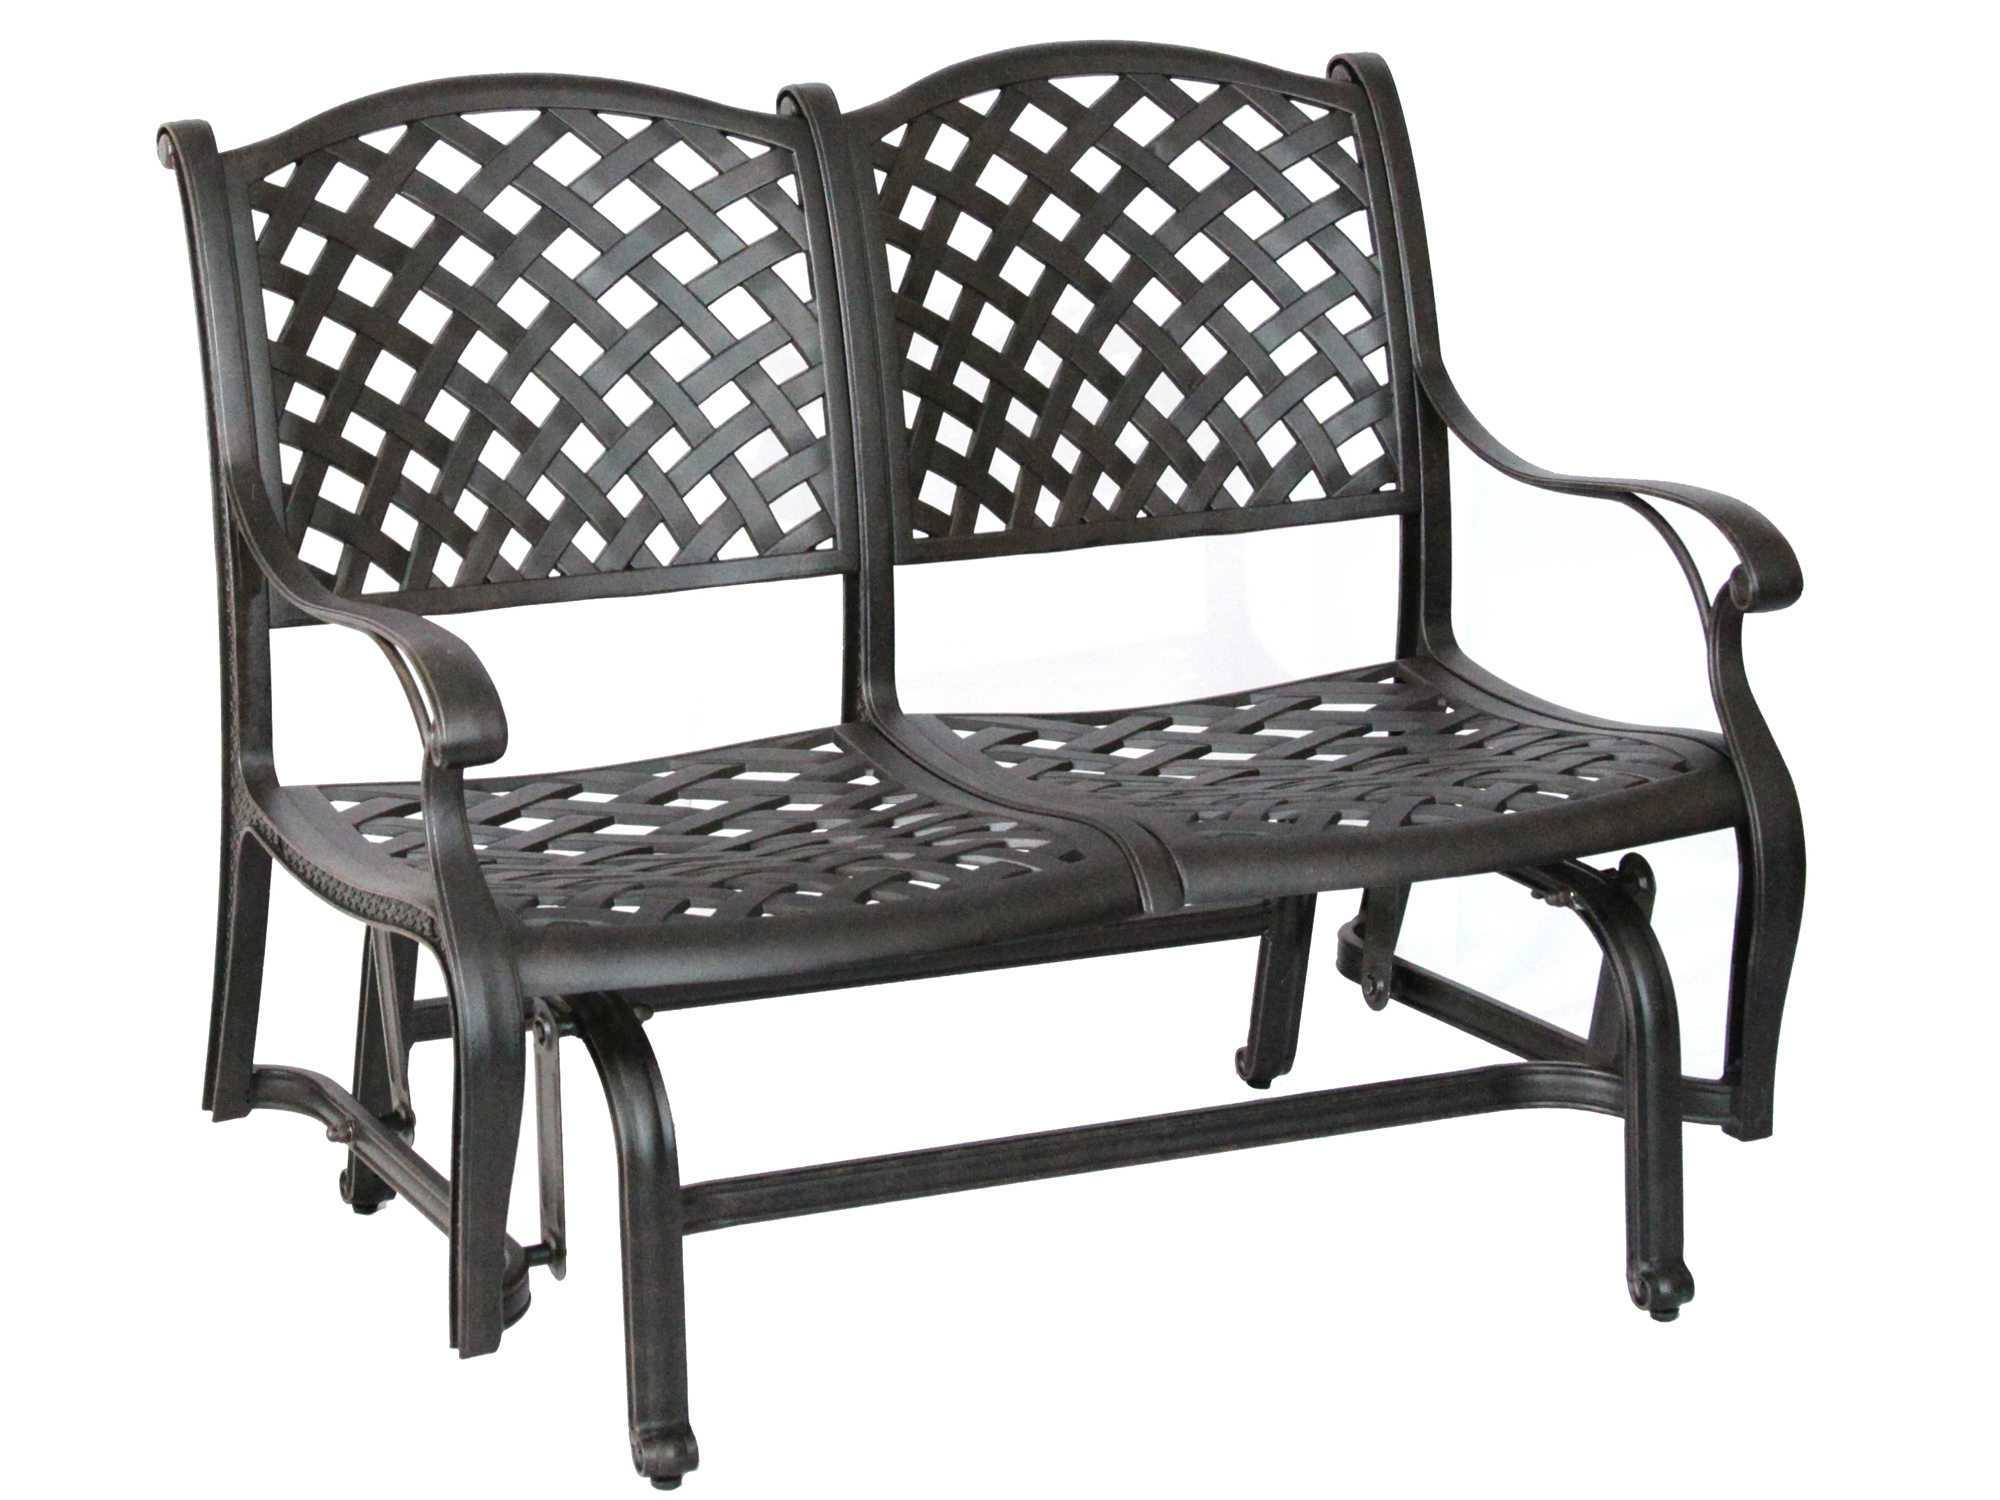 Most Popular Darlee Outdoor Living Standard Nassau Cast Aluminum Antique Intended For 2 Person Antique Black Iron Outdoor Gliders (View 11 of 25)